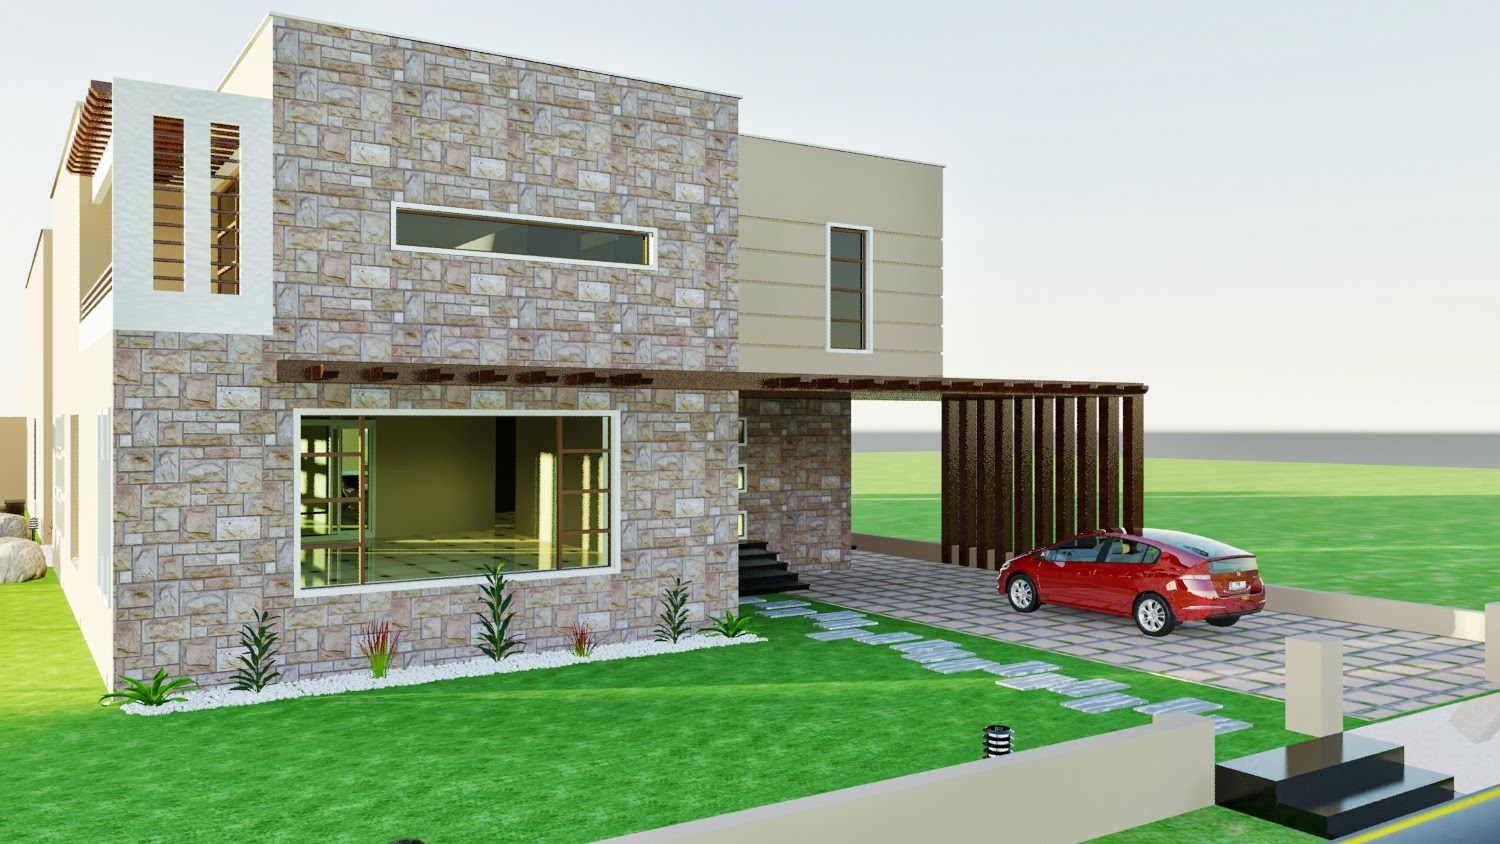 House design karachi - Dha Karachi Vii 3d Front Elevation Swimming Pool Landscaping 1 Kanal Plot House Design